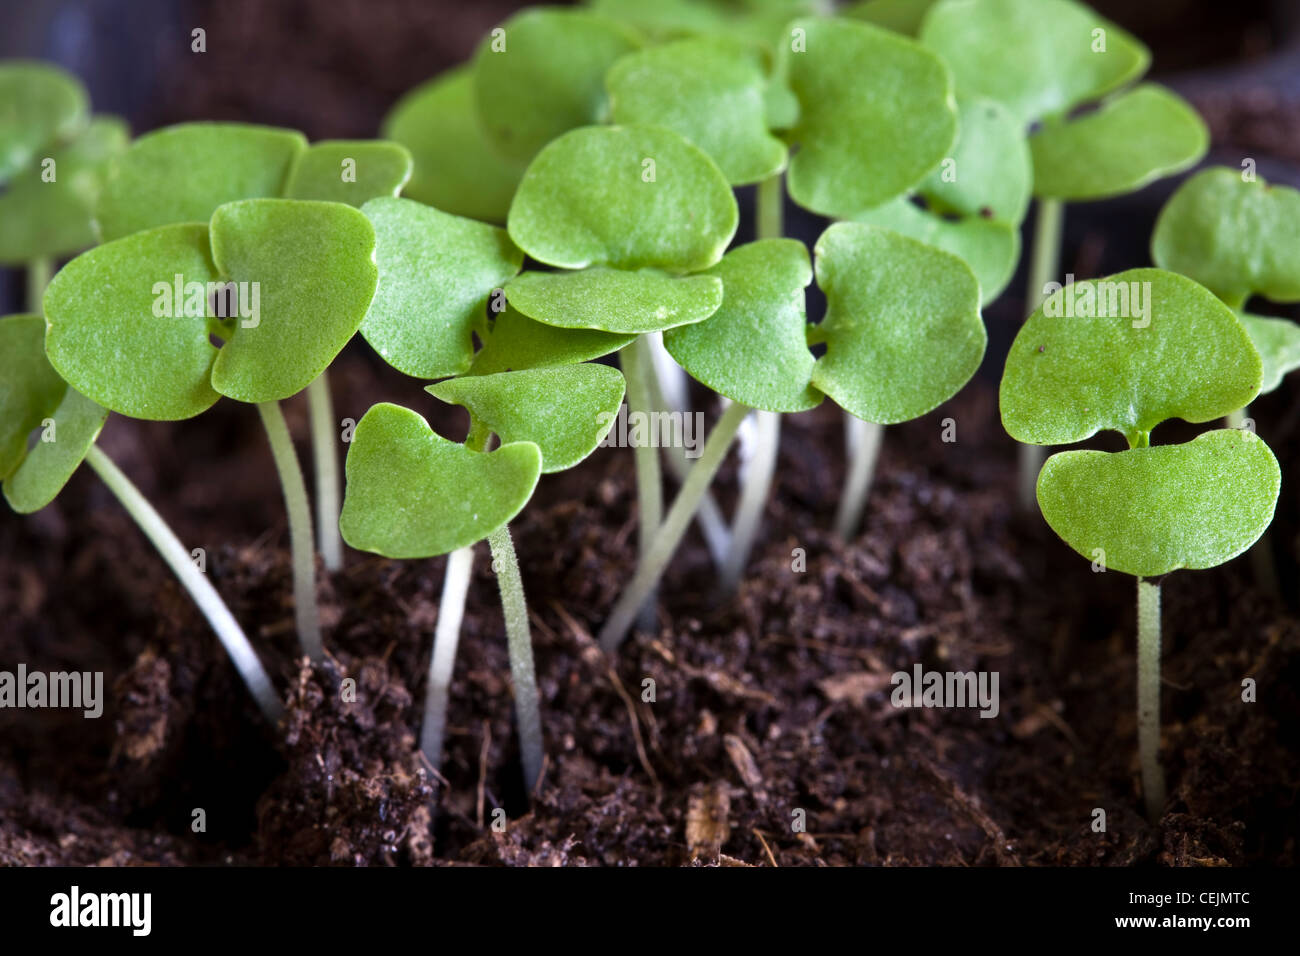 basil seedlings growing in compost after germination stock photo